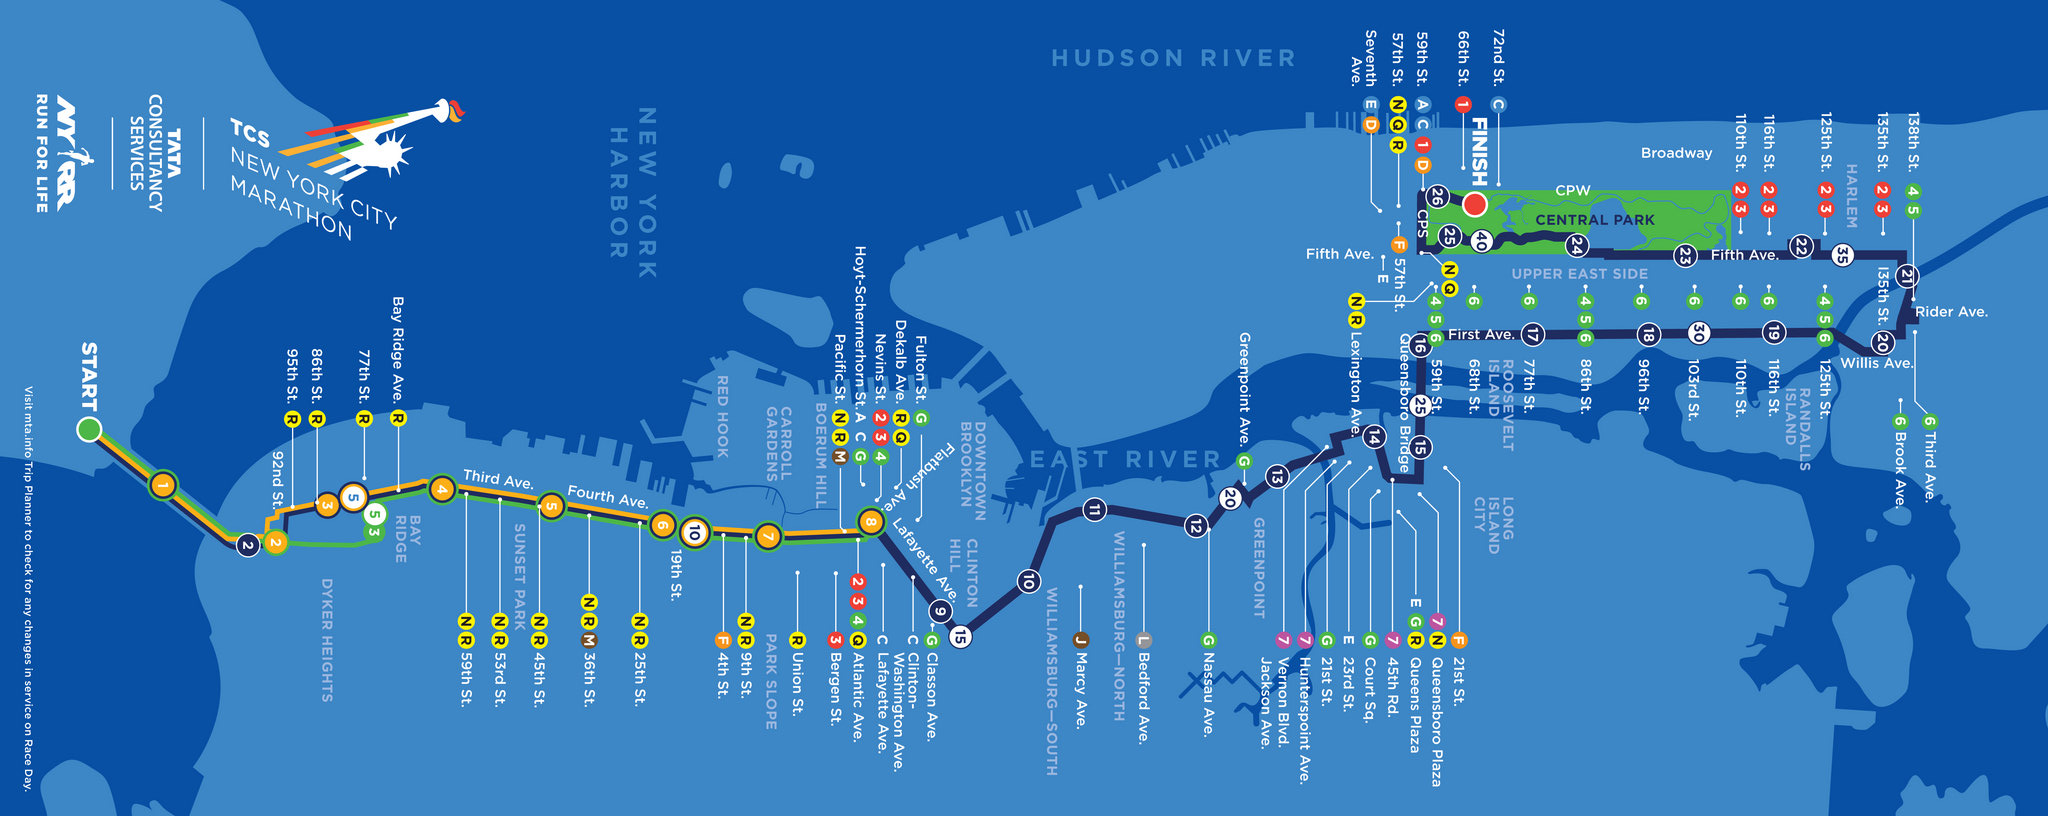 Ruta del TCS New York City Marathon 2015.